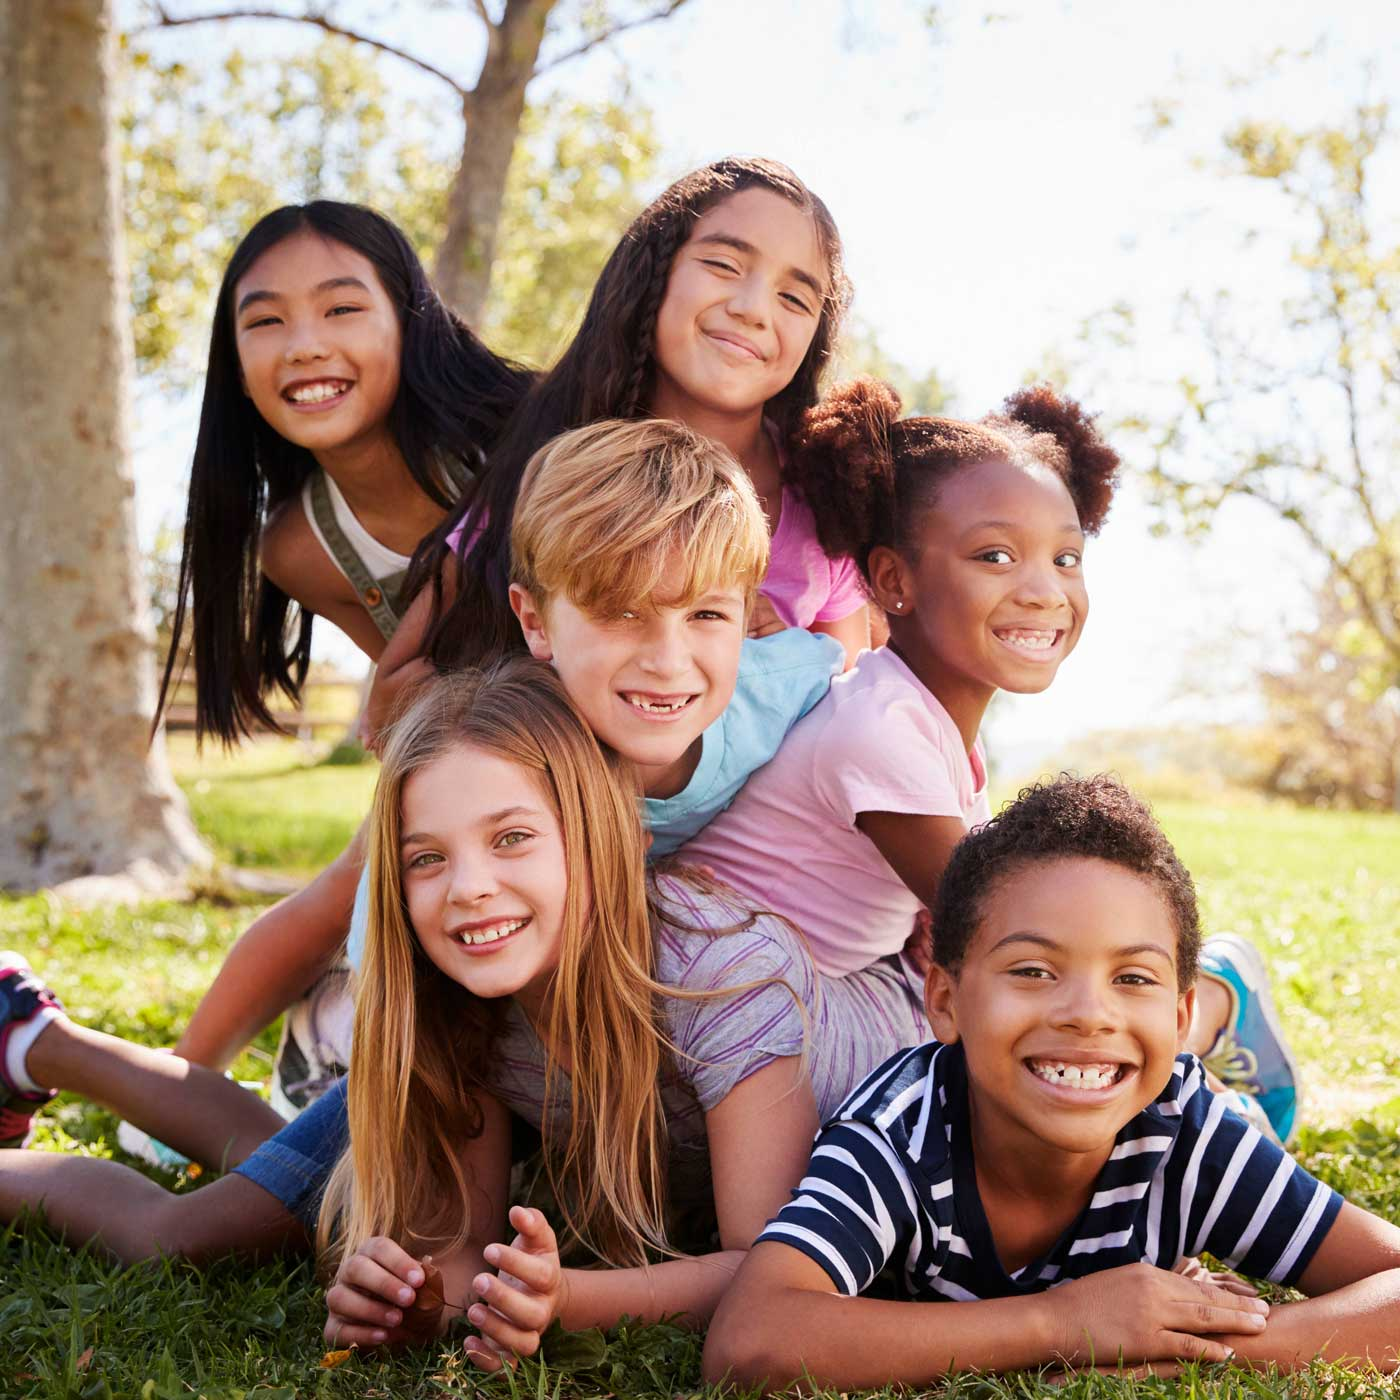 Childrens Health And Wellbeing